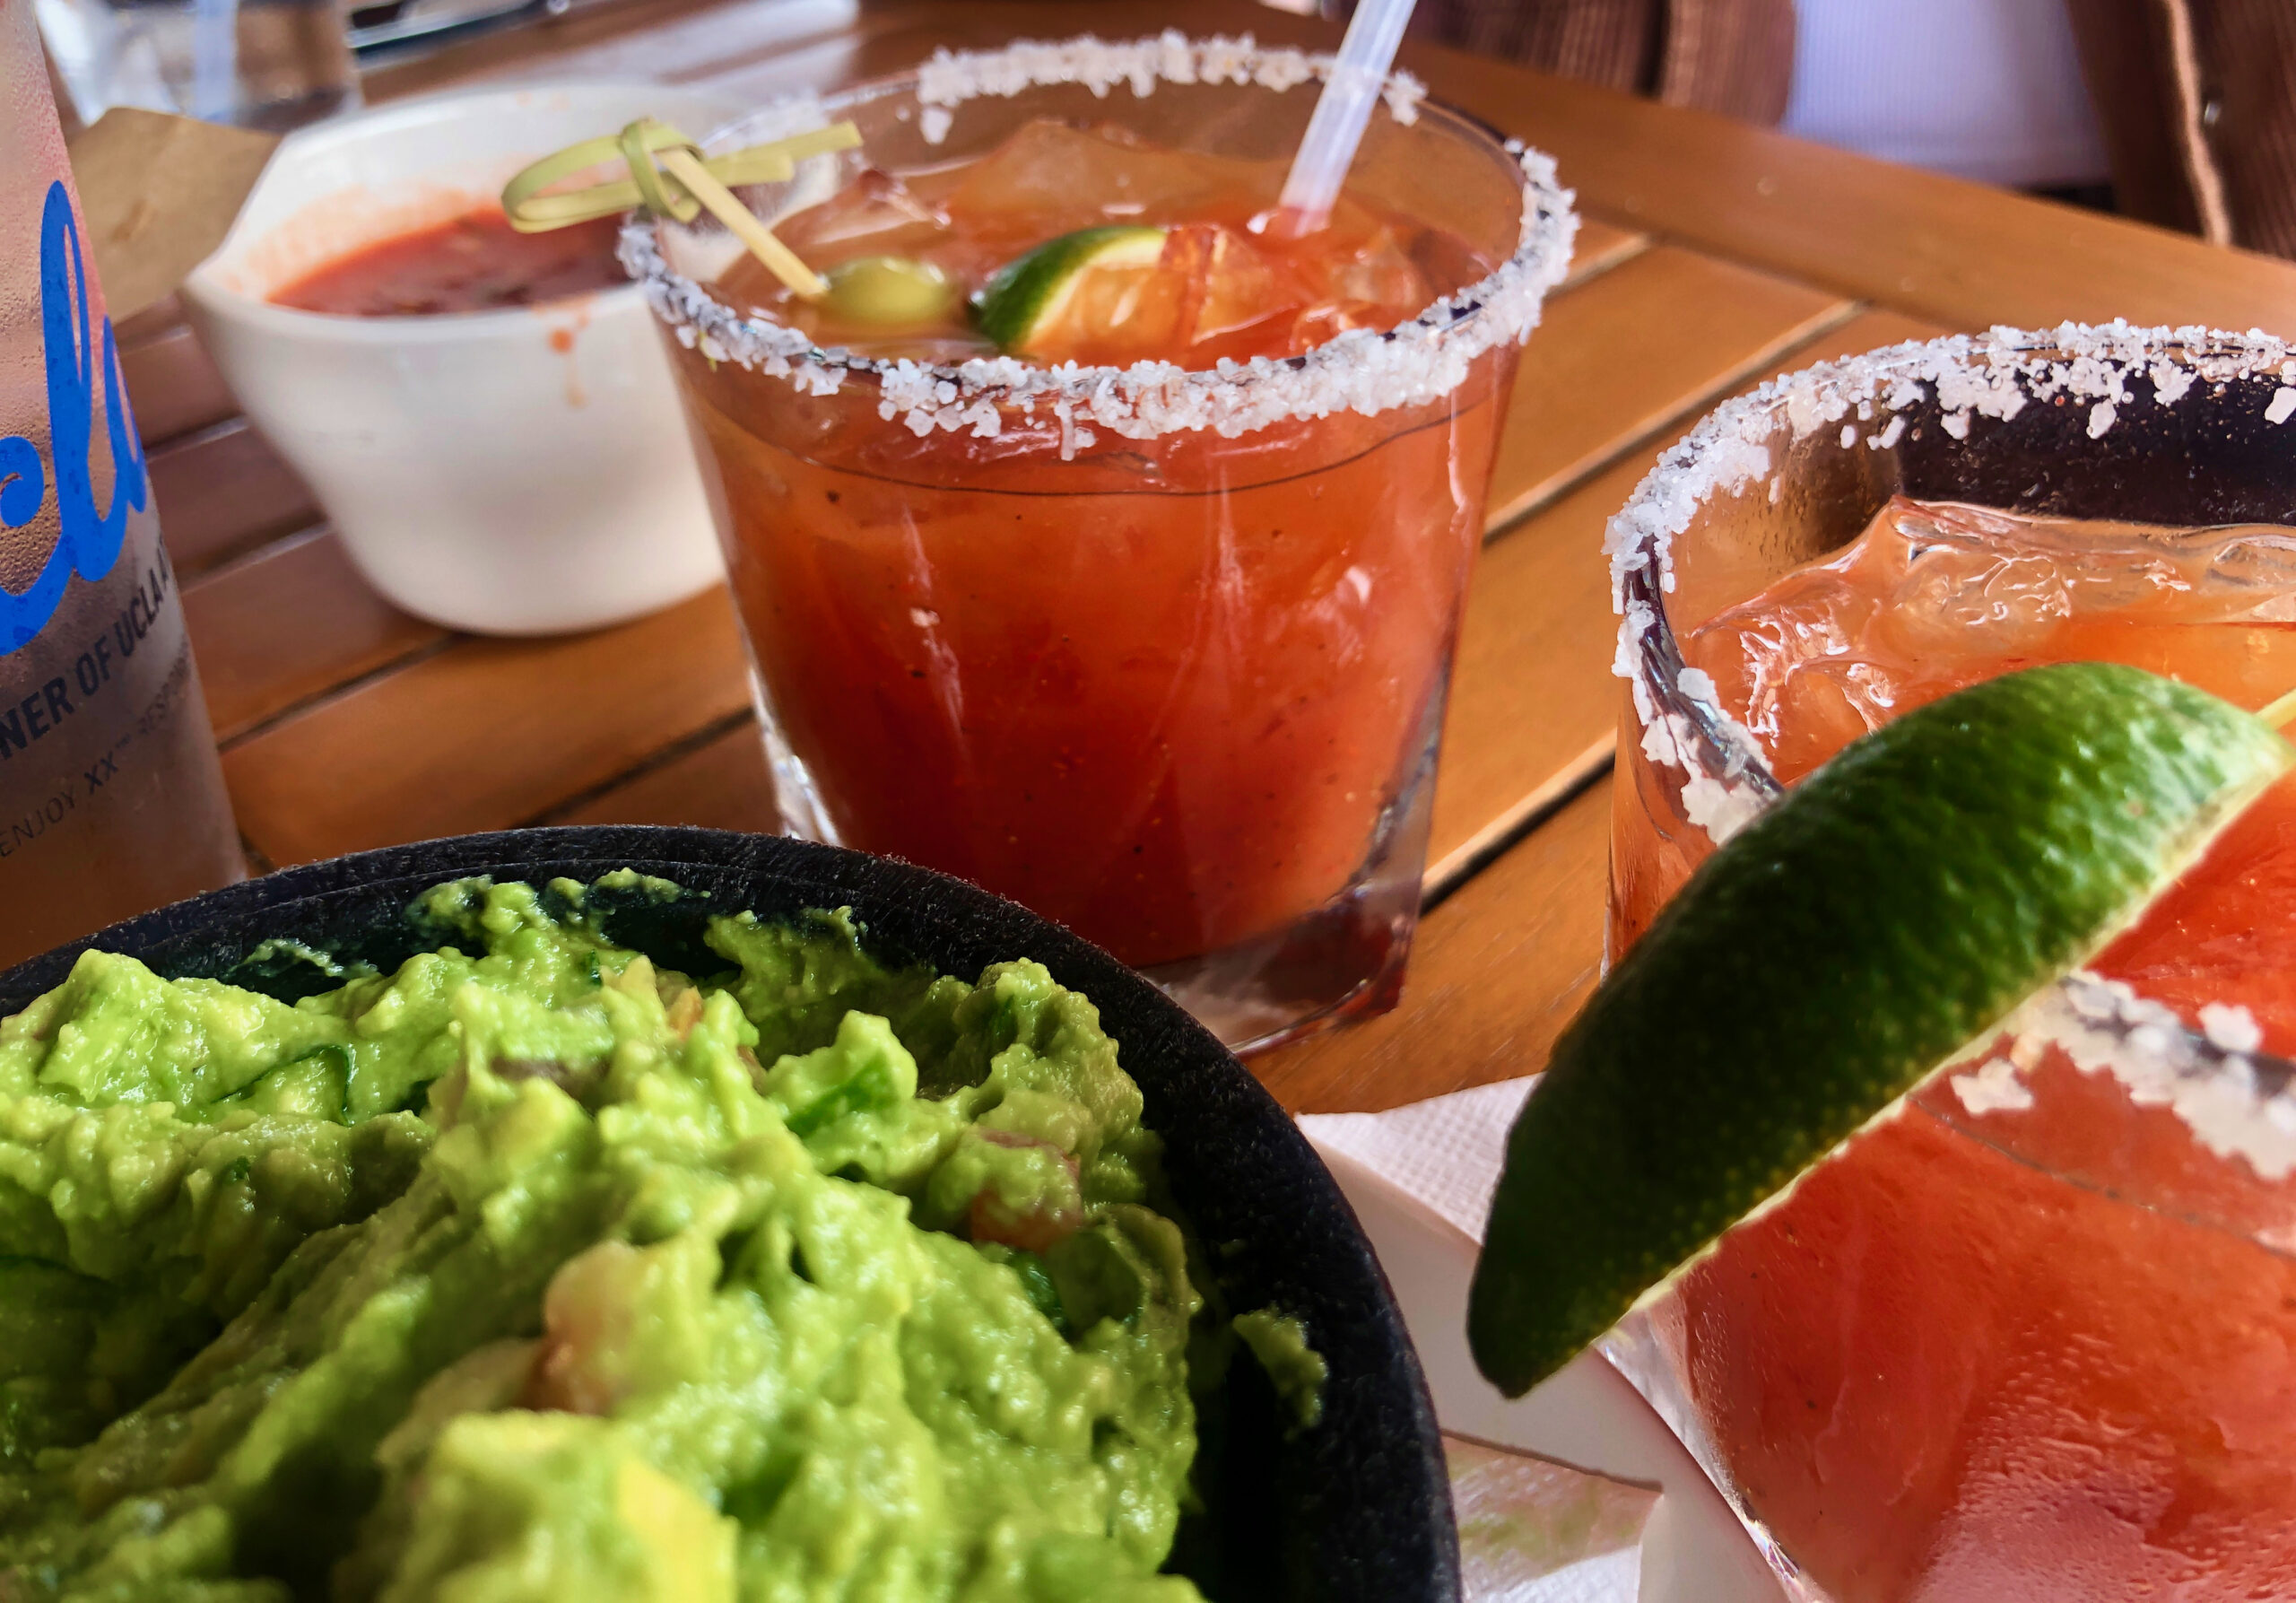 Specialty bottomless cocktails at brunch at La Vida Cantina, one of many costa mesa family restaurants.